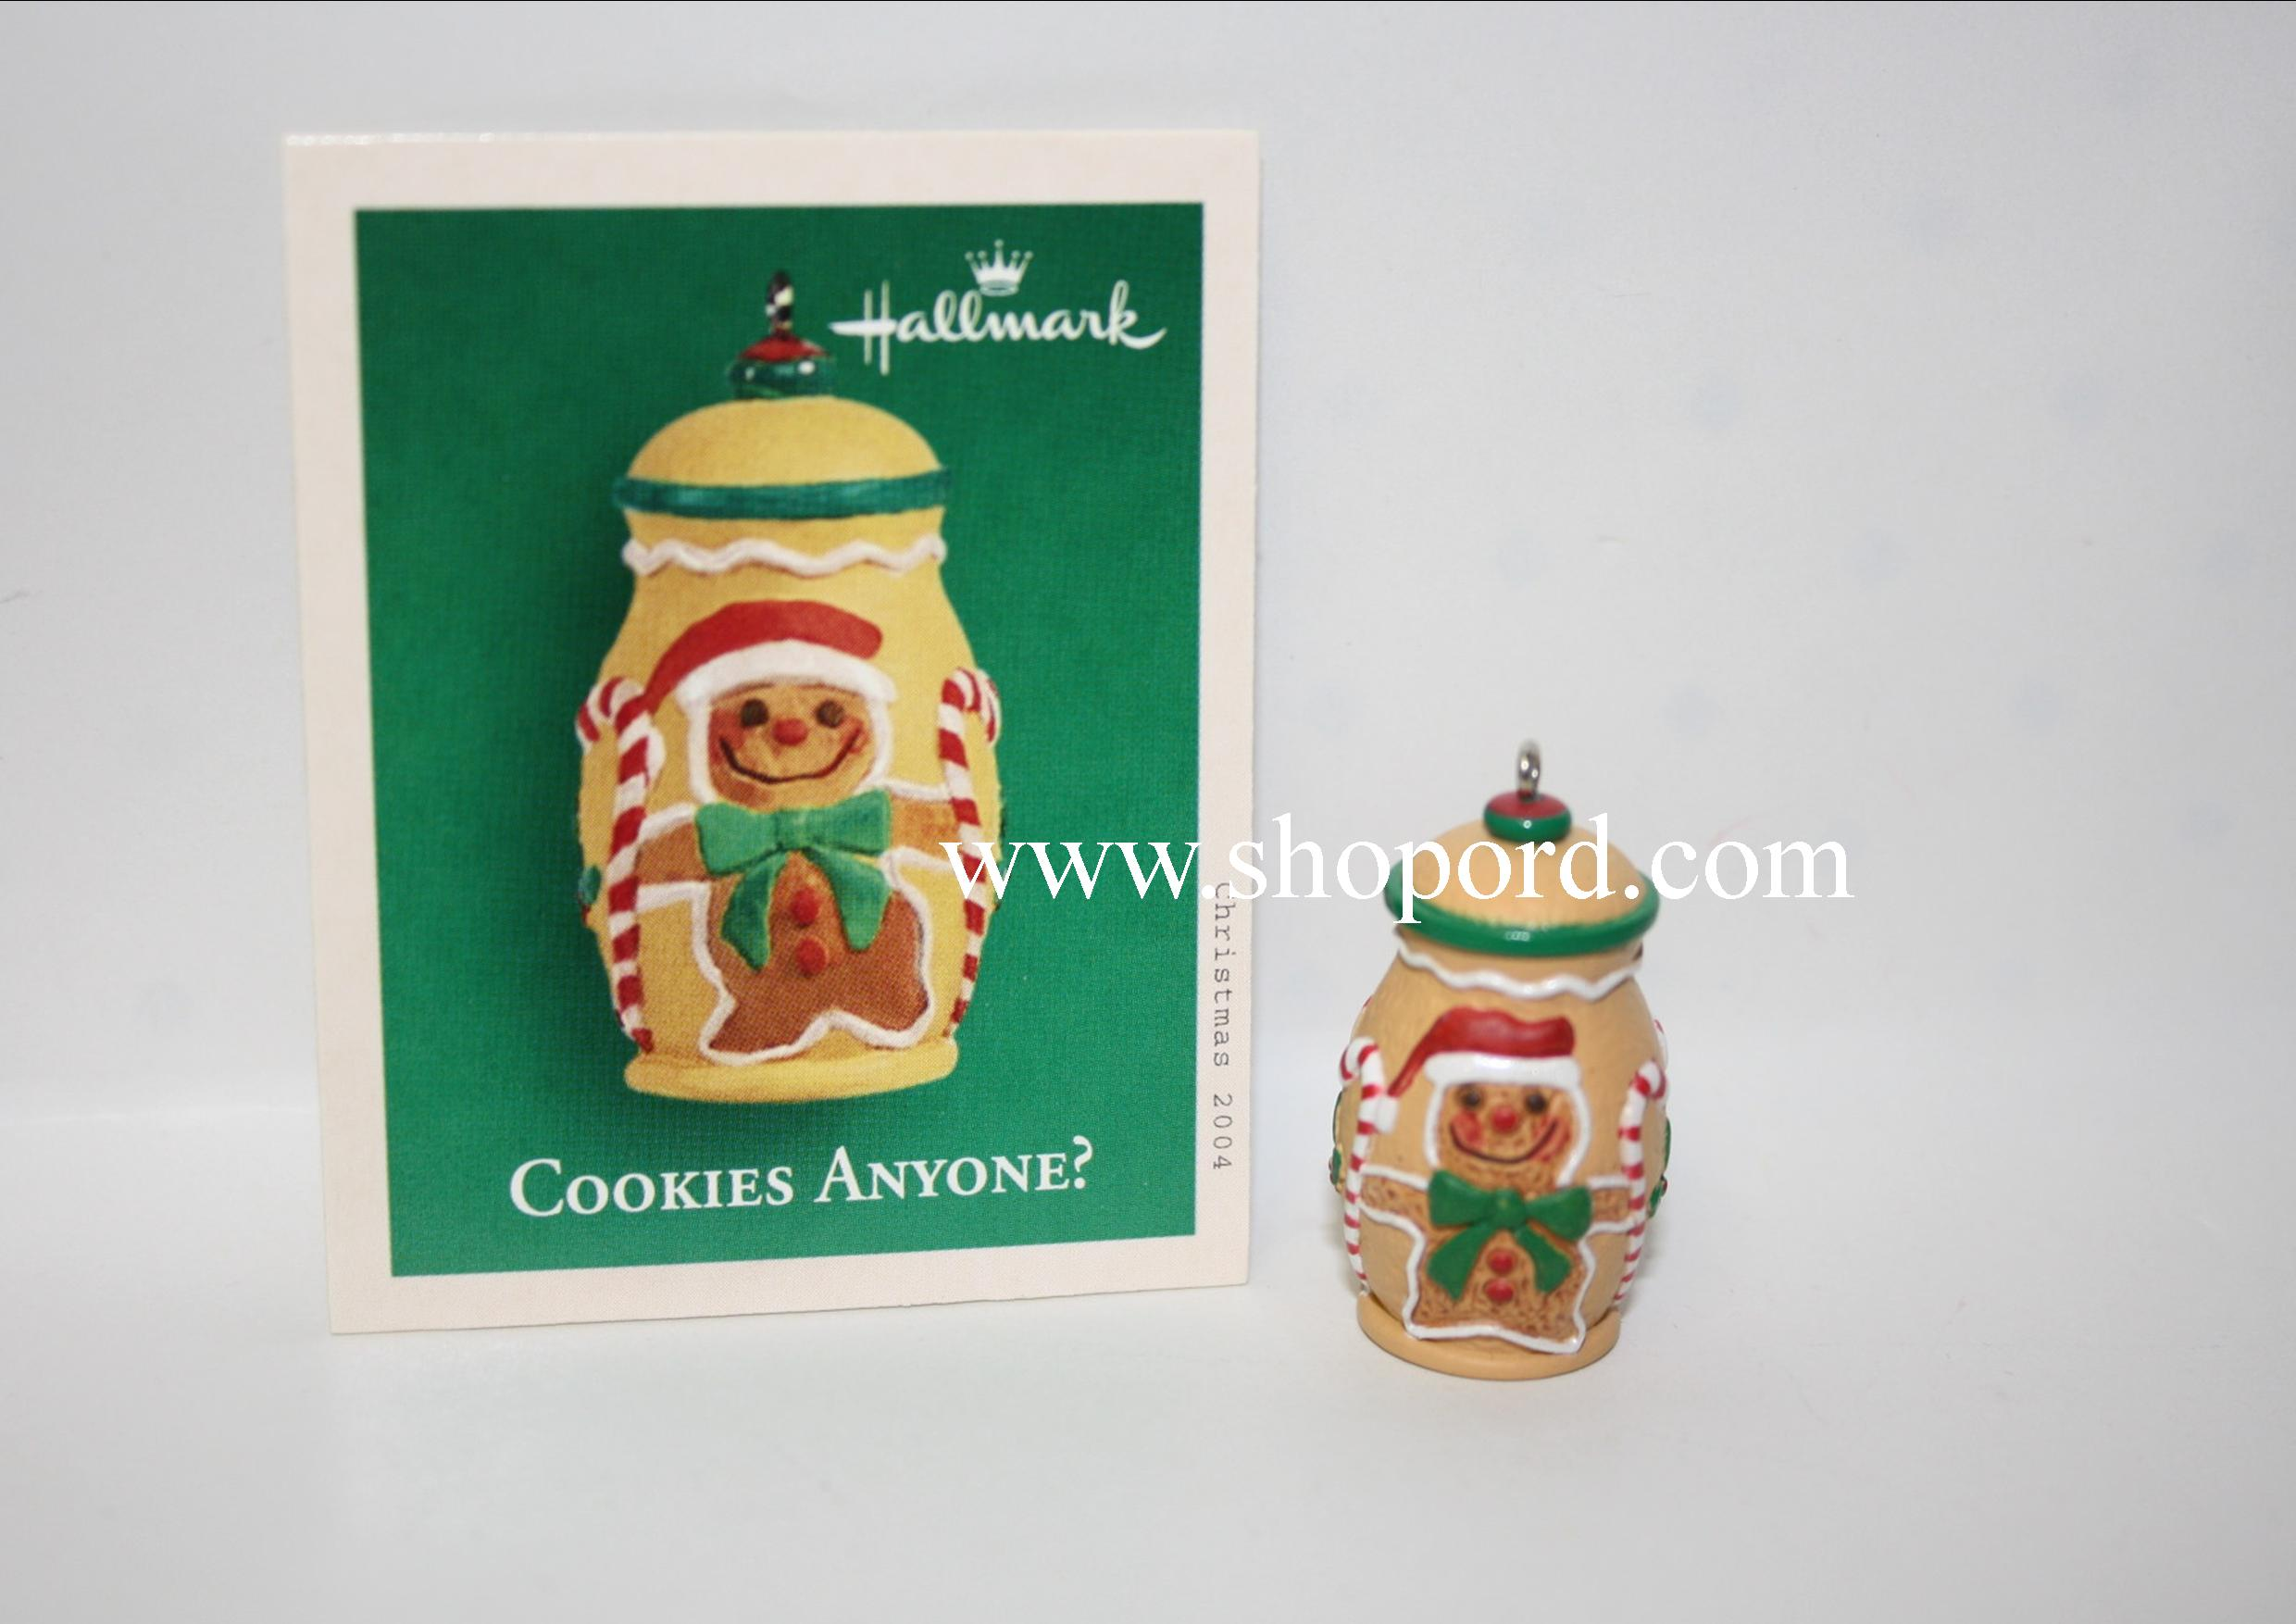 Hallmark 2004 Cookies Anyone Miniature Ornament WD3037